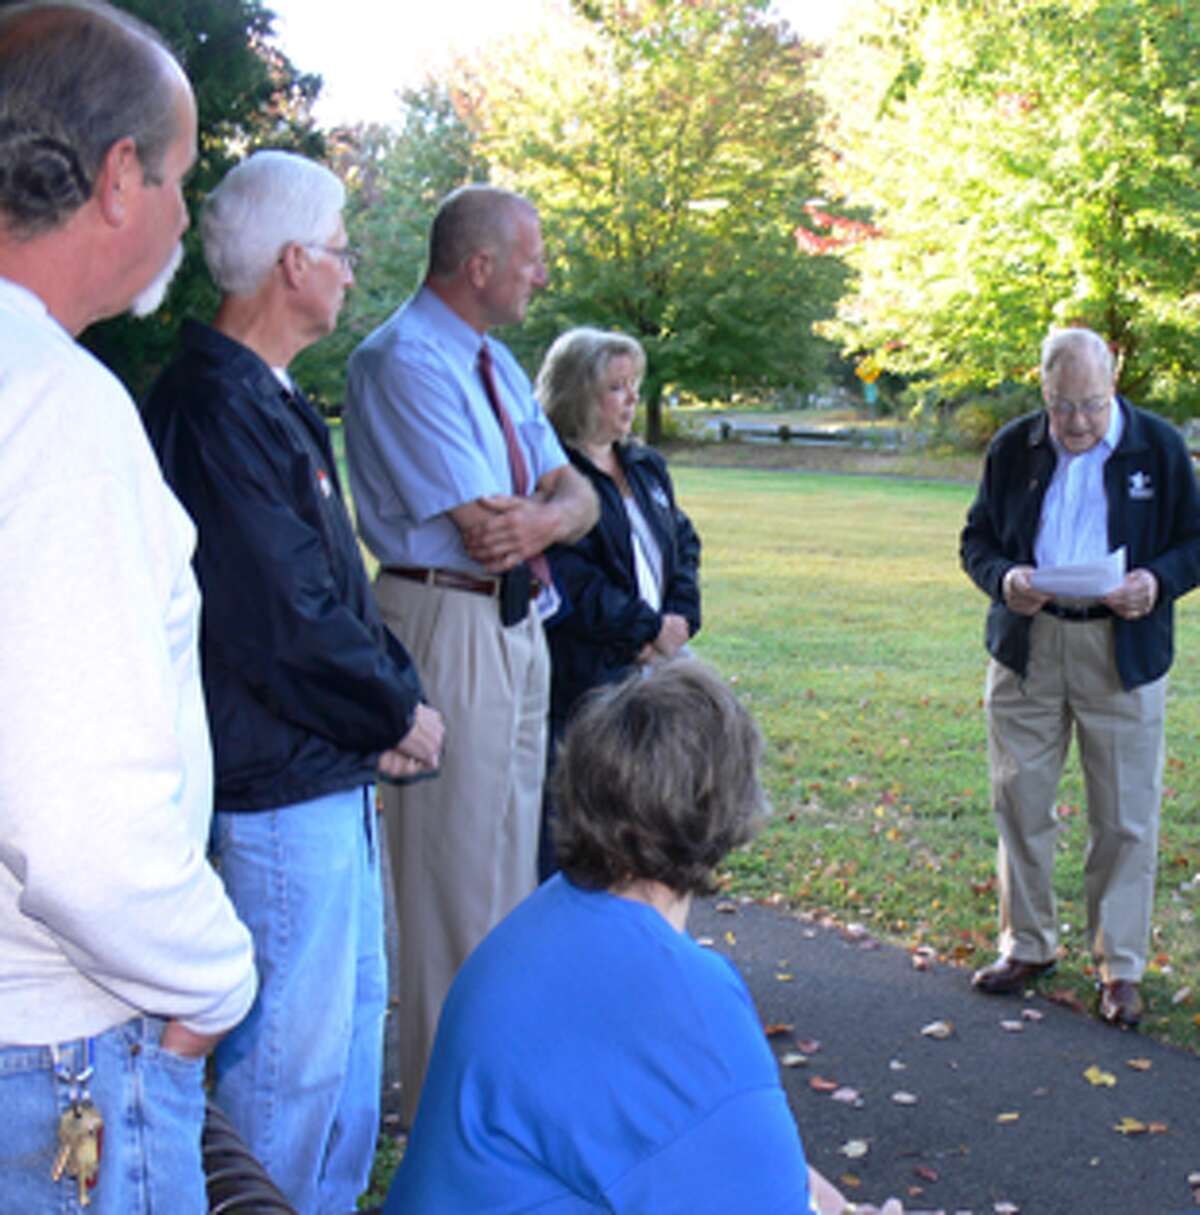 Regis Dognin, one of the neighbors involved in creating Constitution Park, talks at an event to mark the park's 10-year anniversary.